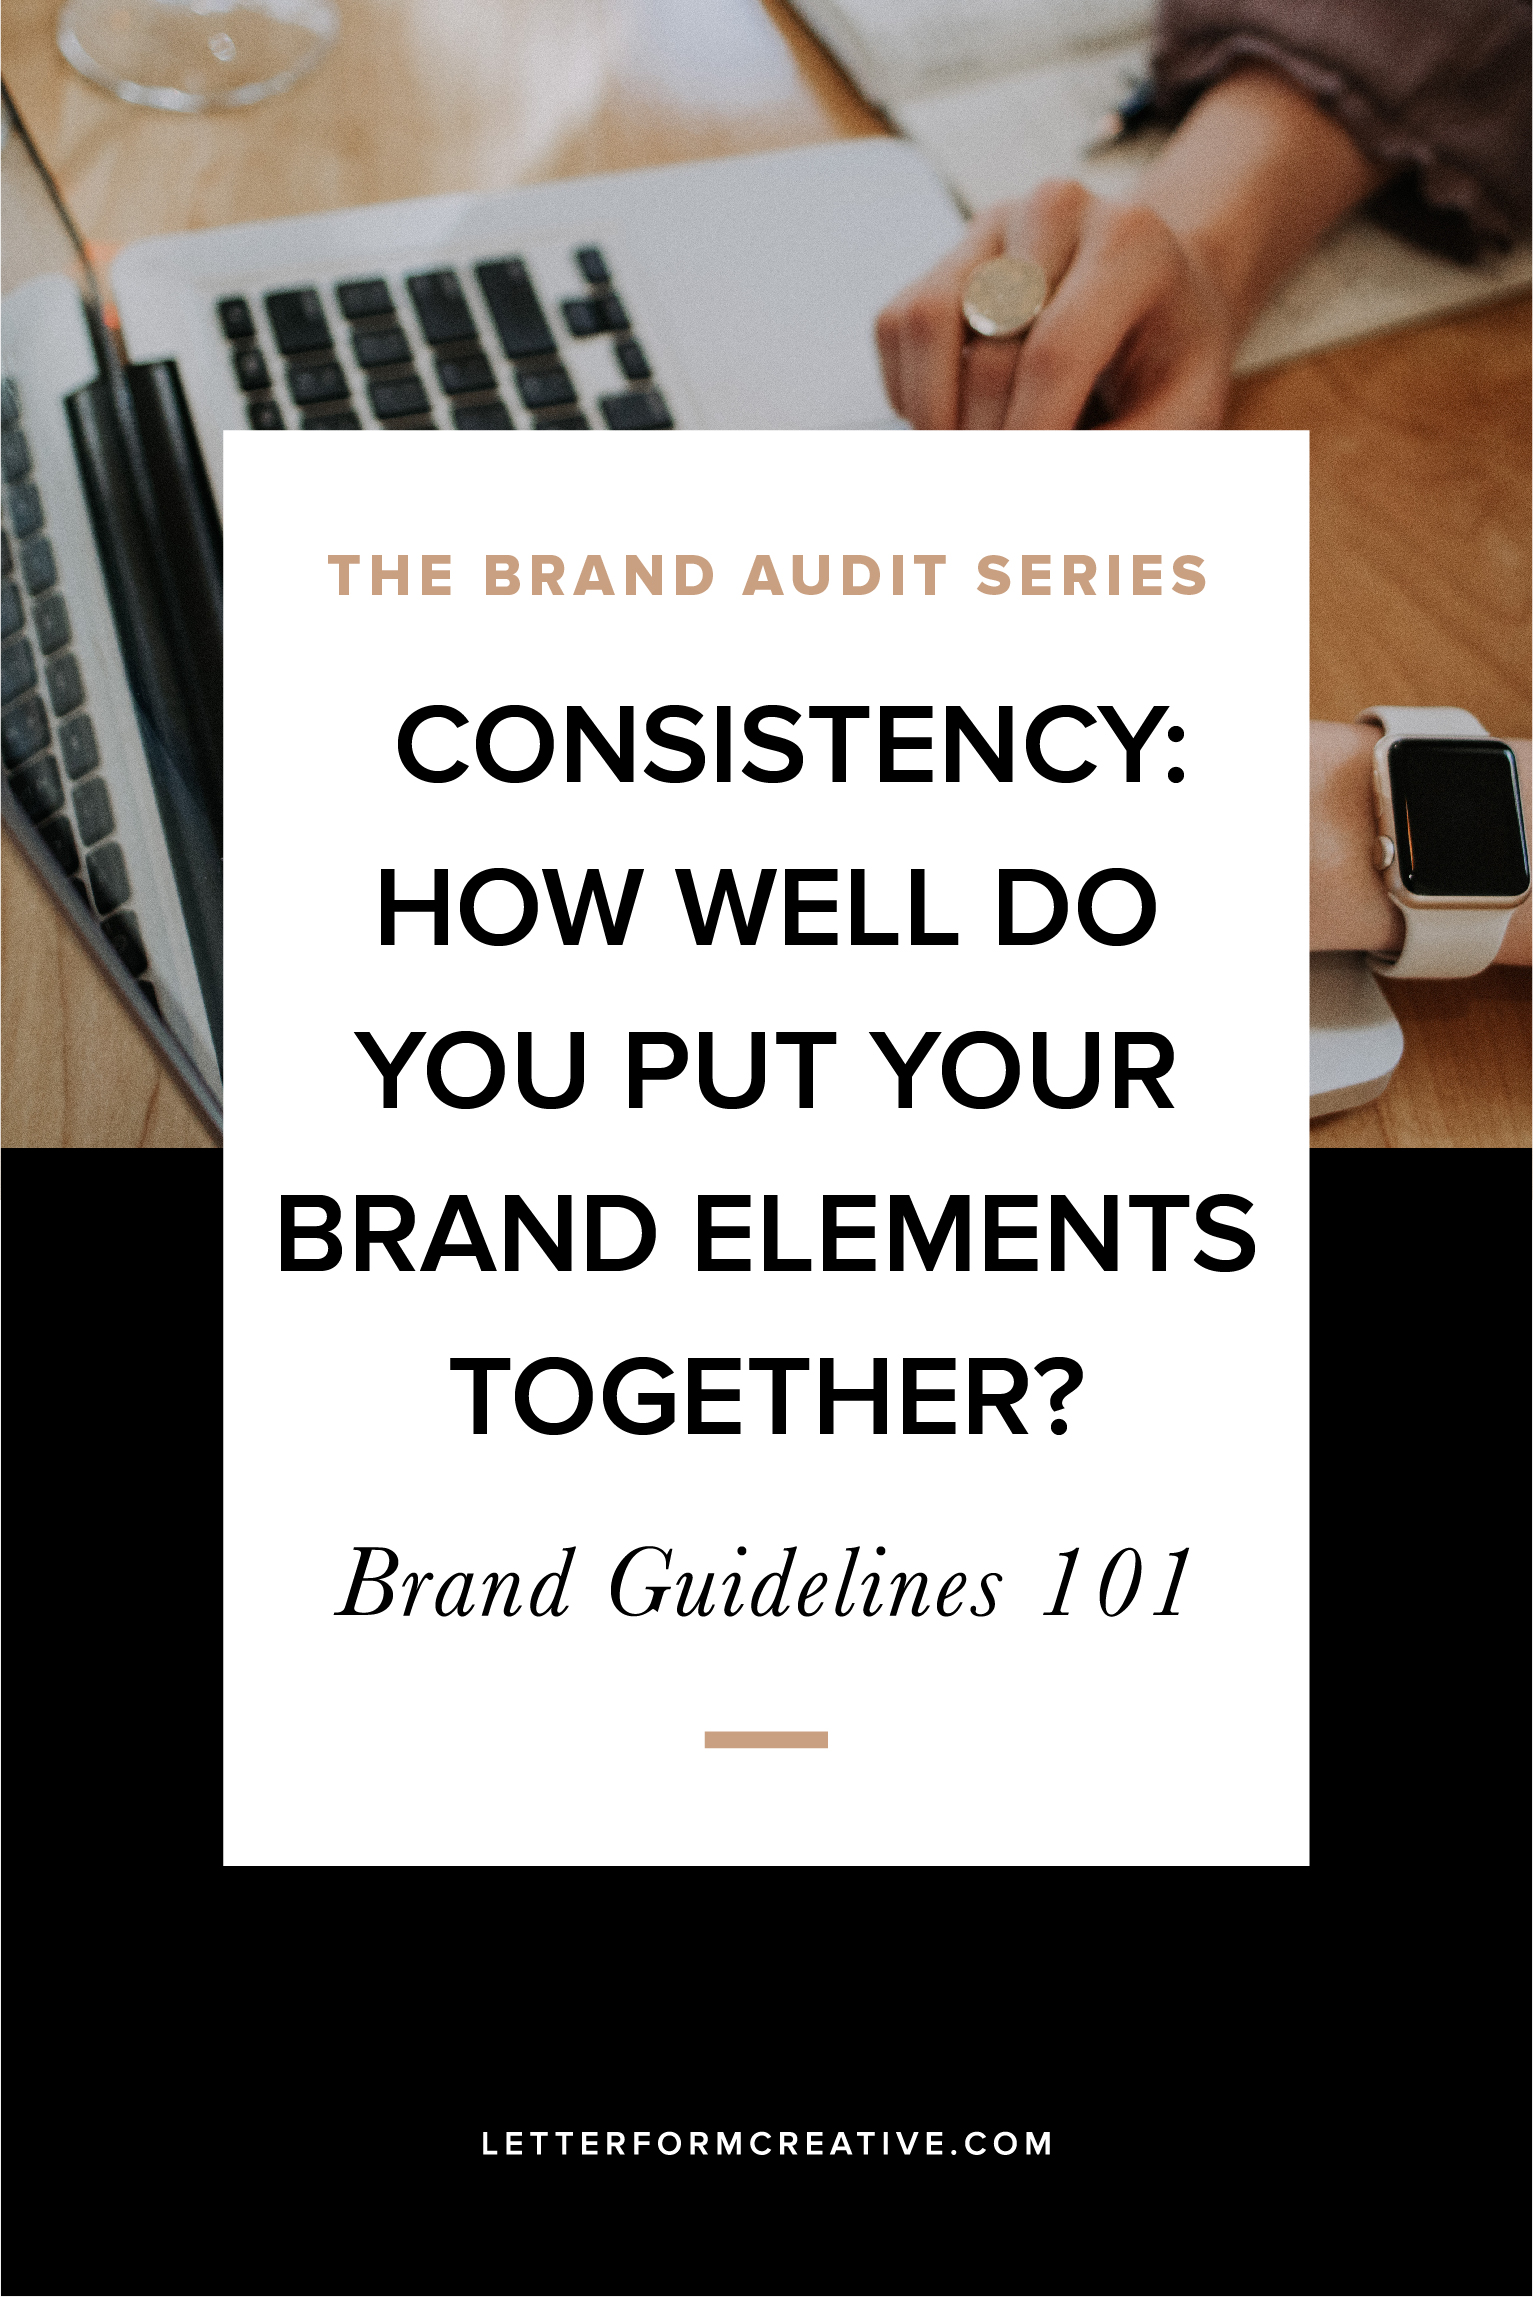 The Brand Audit Series / Consistency: How Well DO You Put Your Brand Elements Together?